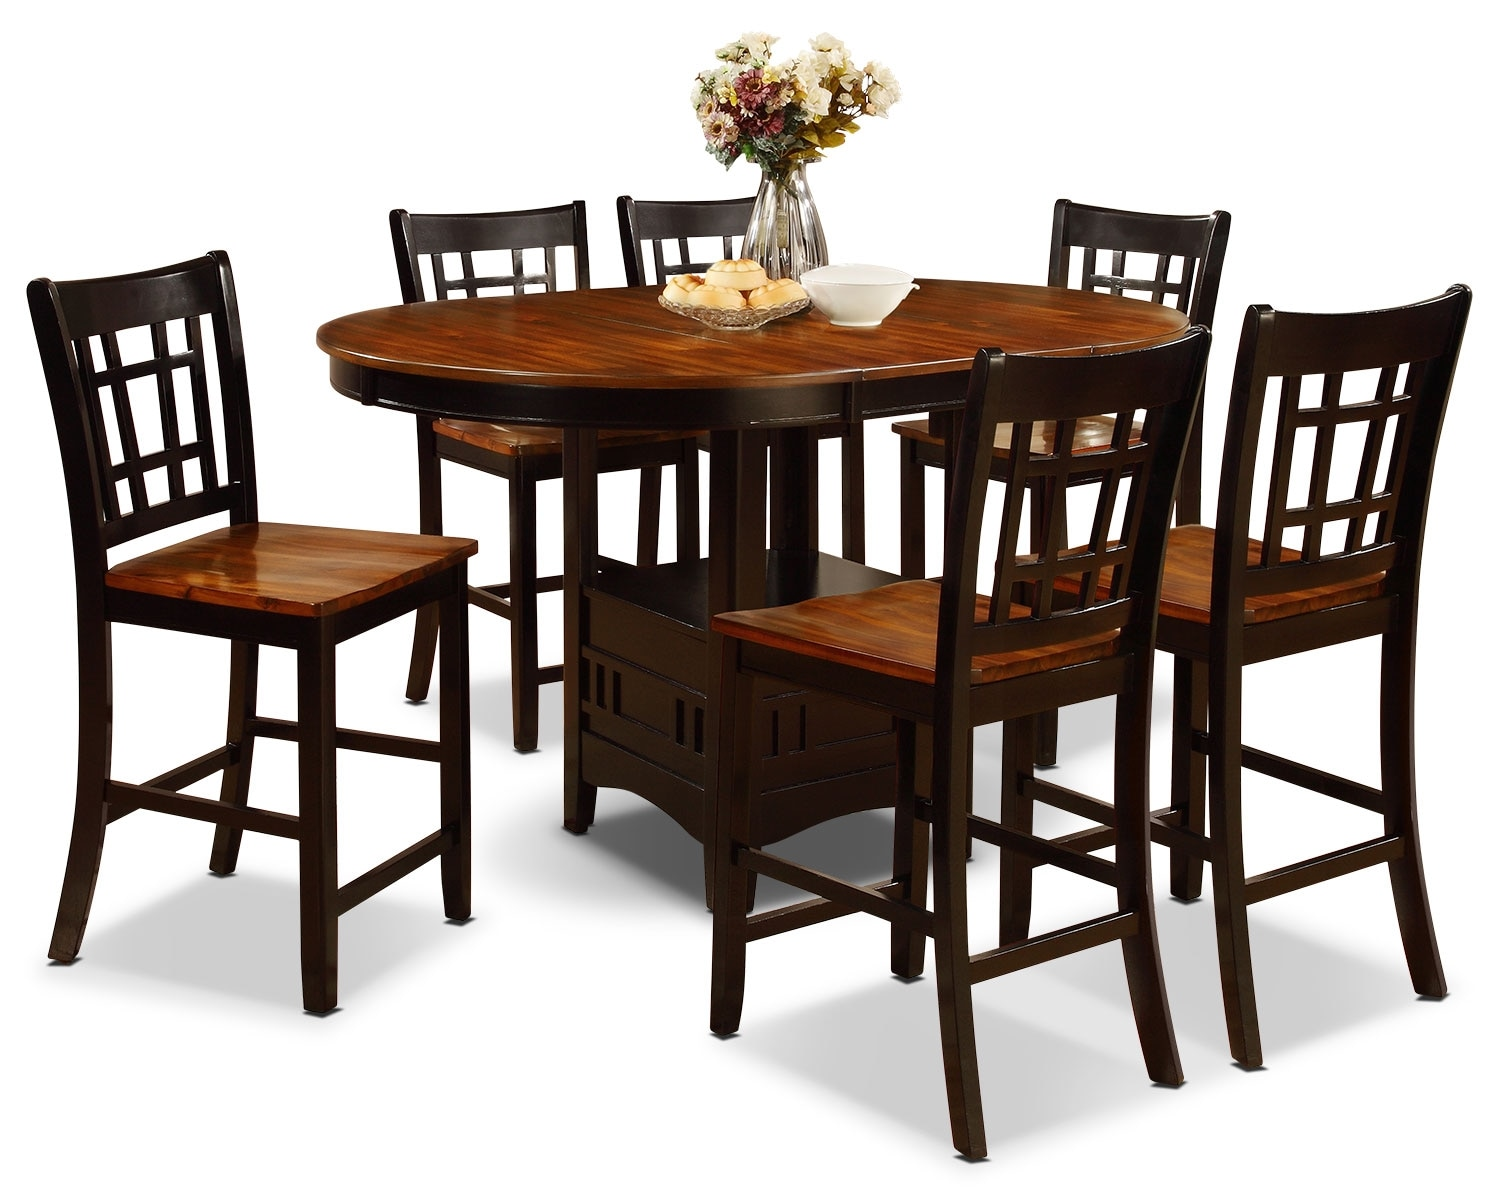 Dara 7-Piece Counter-Height Dining Package